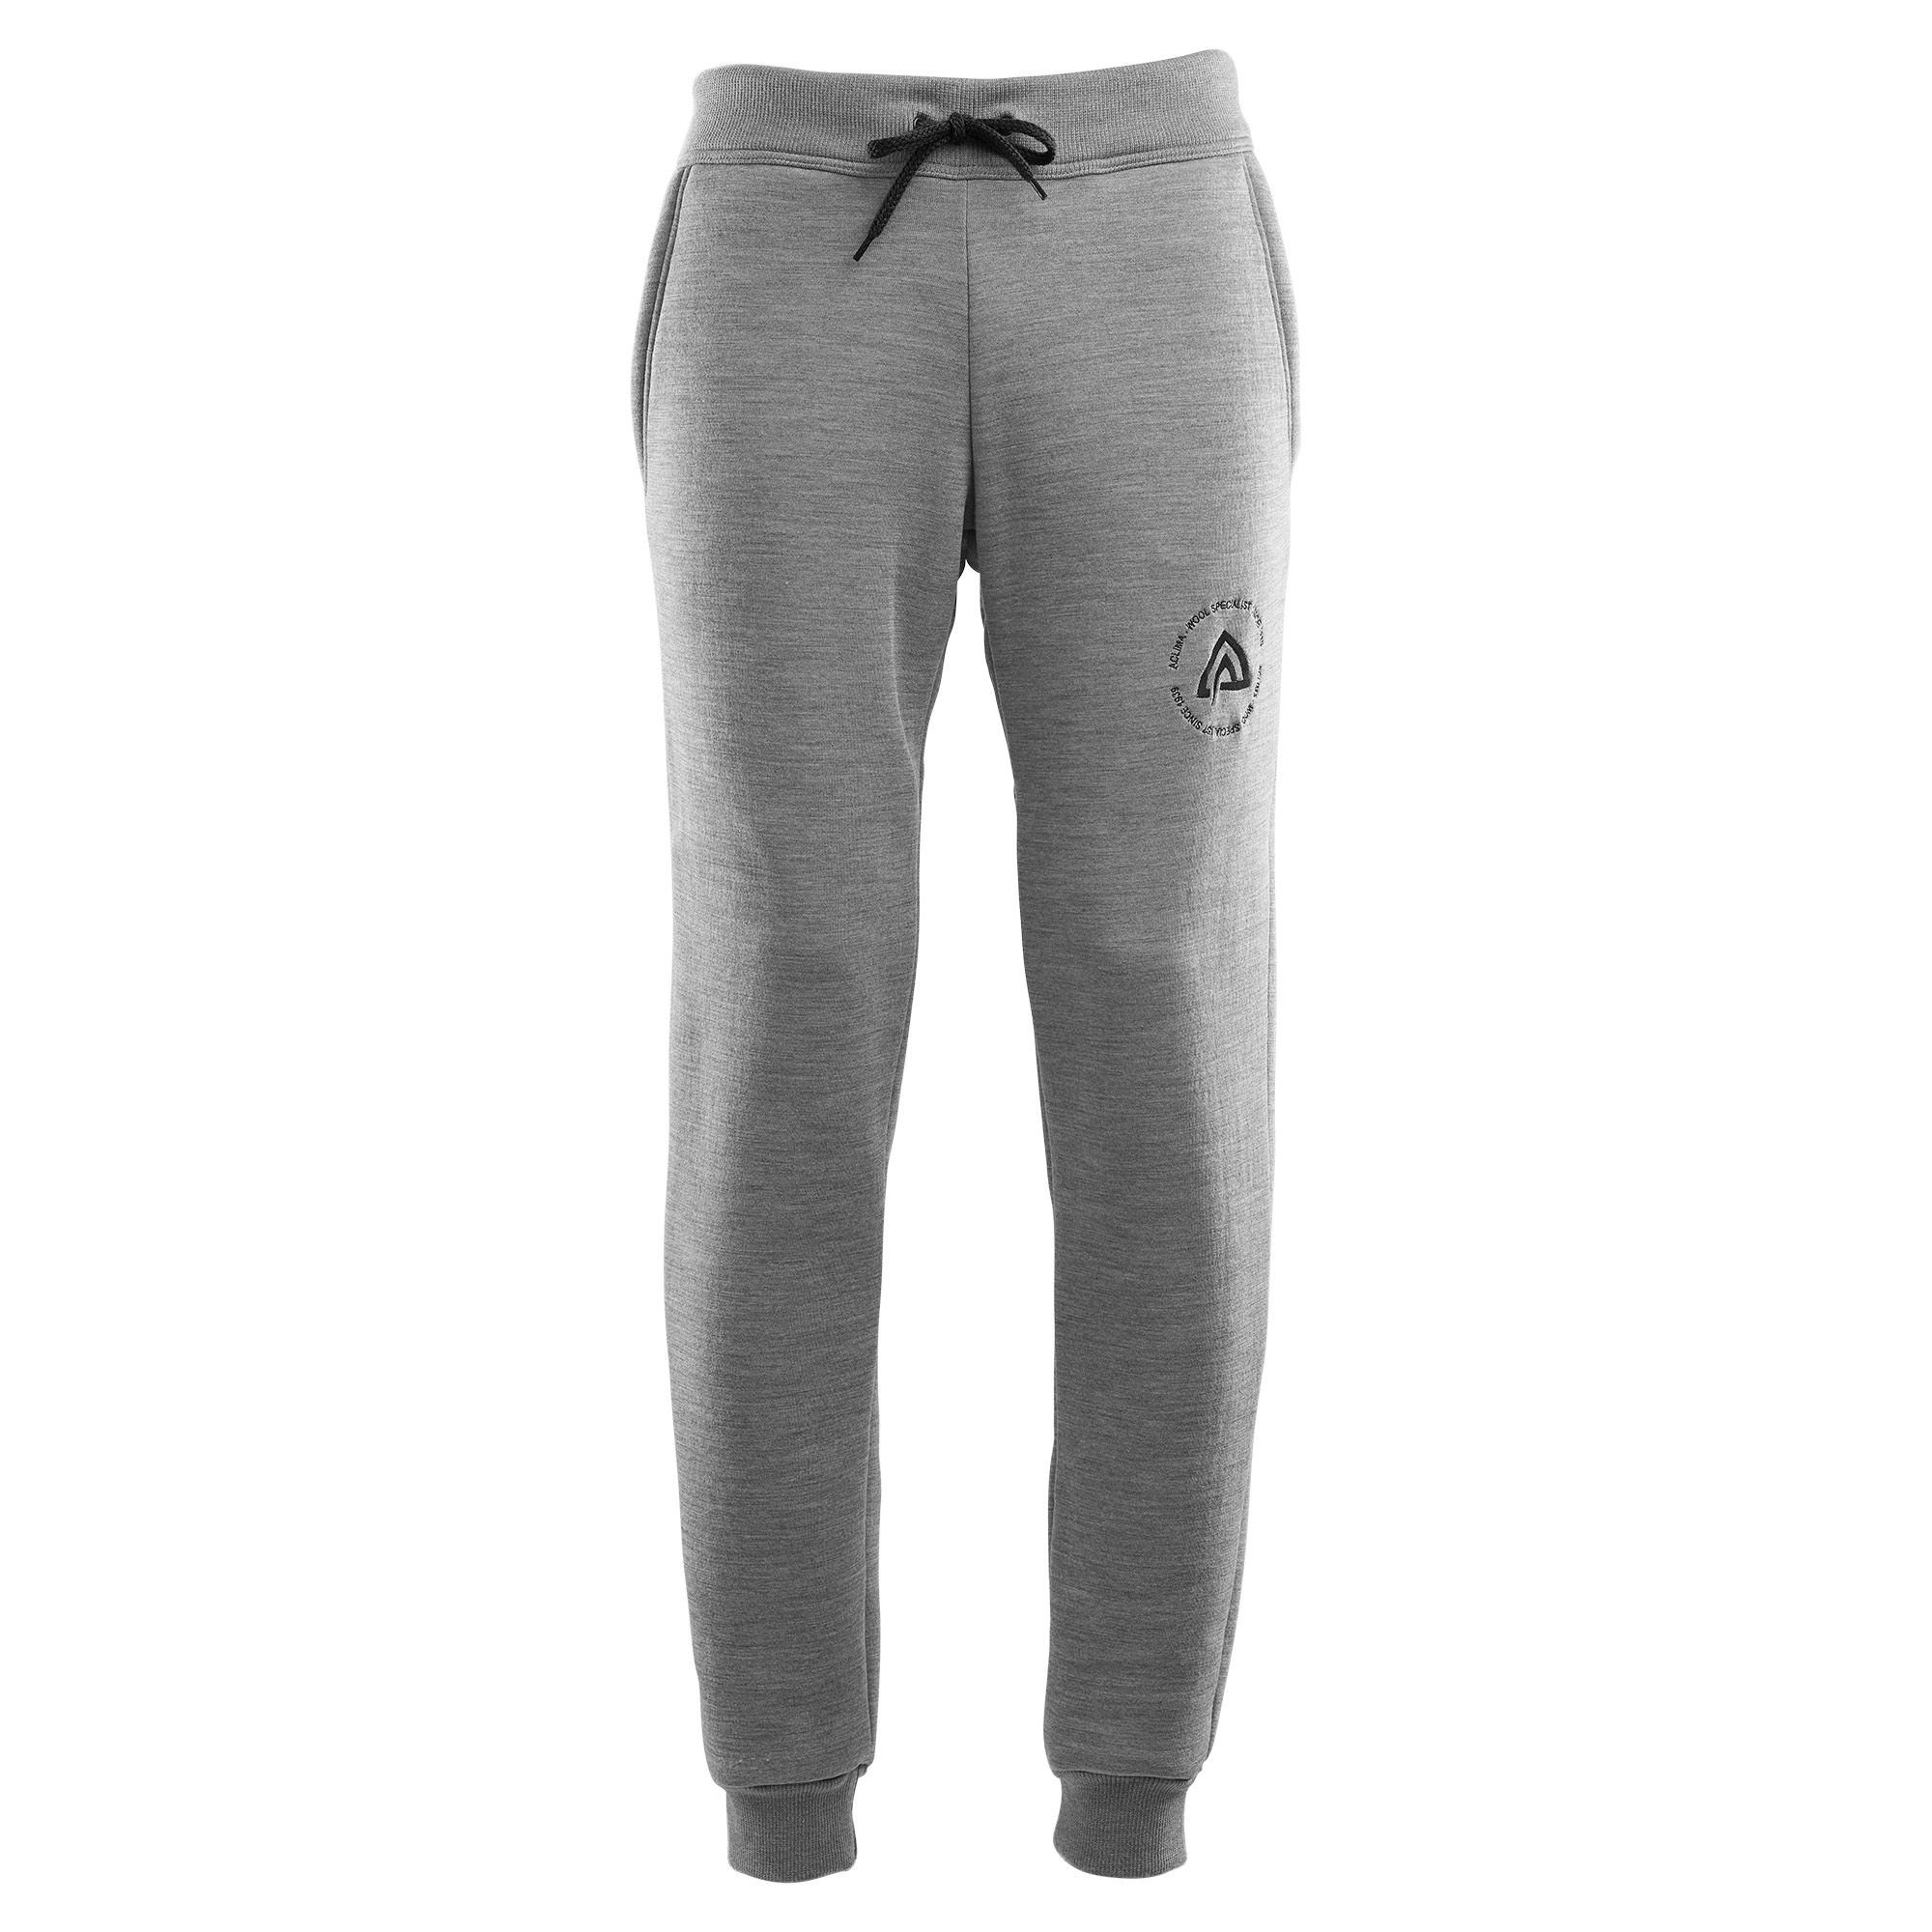 Aclima Fleece Wool Pants